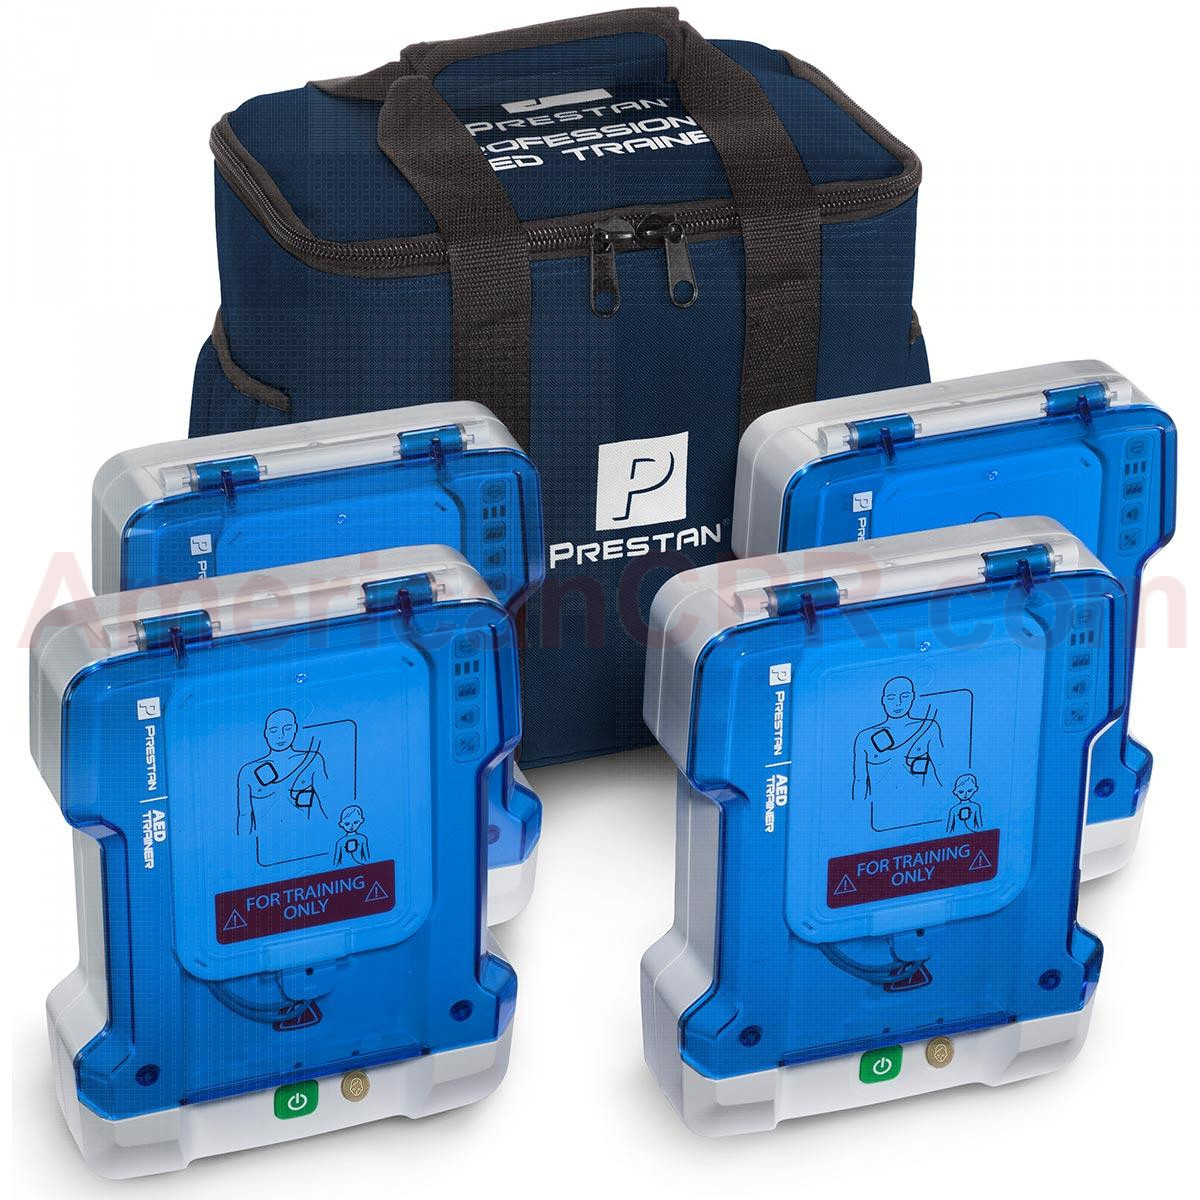 Prestan Professional AED Trainer, 4 Pack - Prestan Products